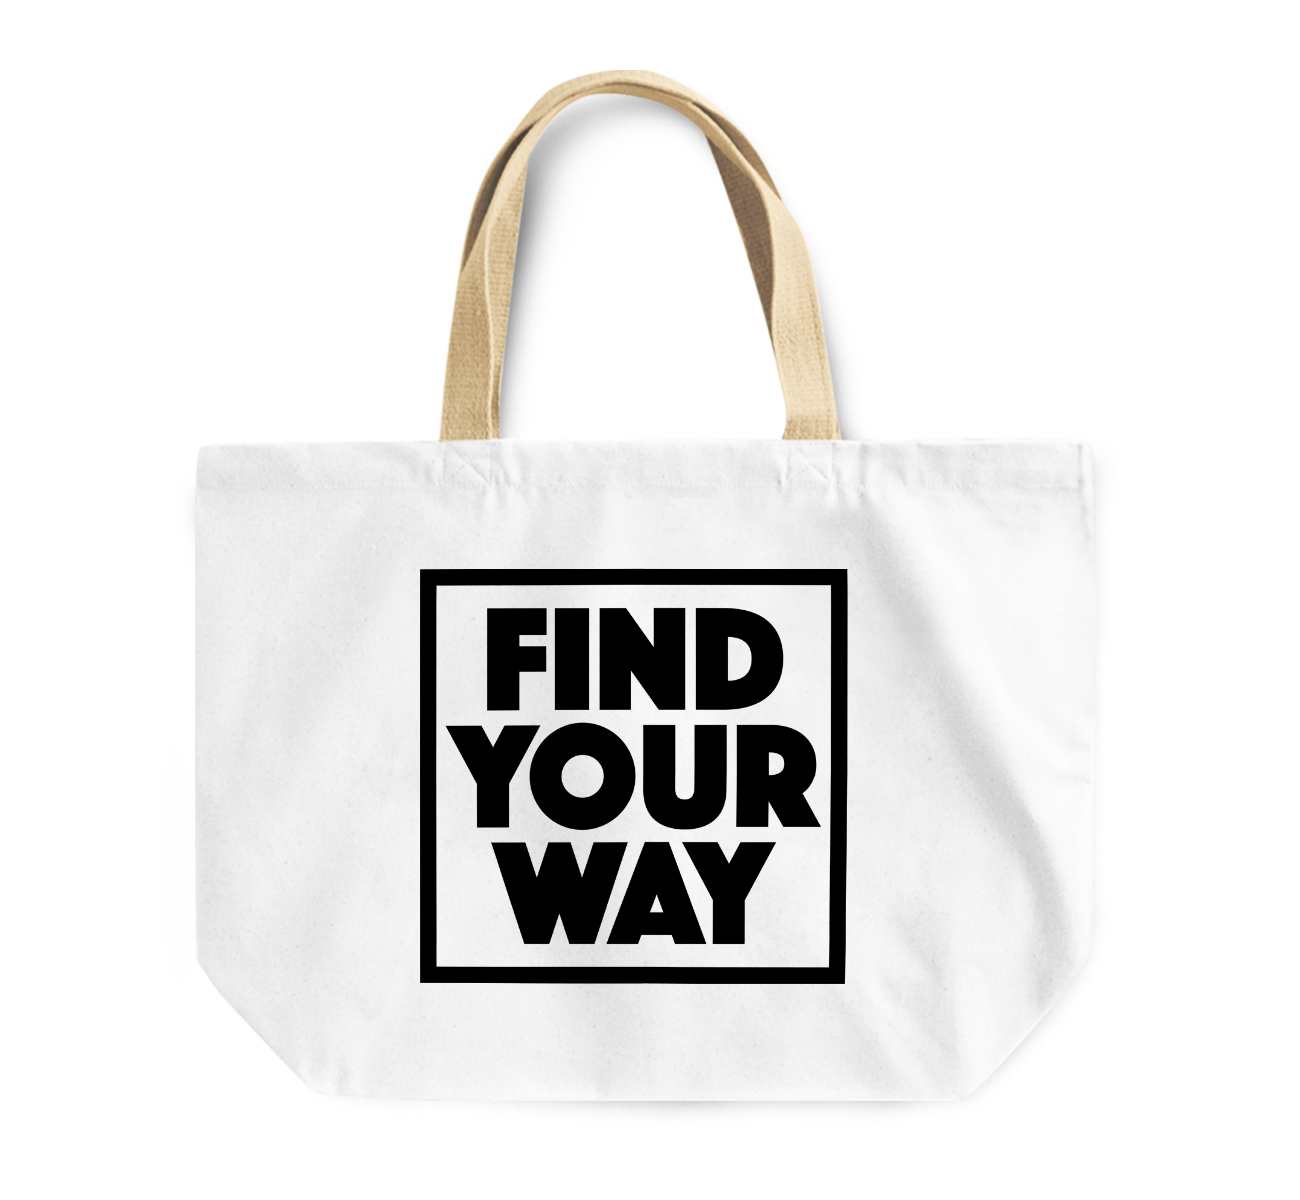 Tote Bag Find Your Way Positive Message Reusable Shopping Bag By Loud Universe